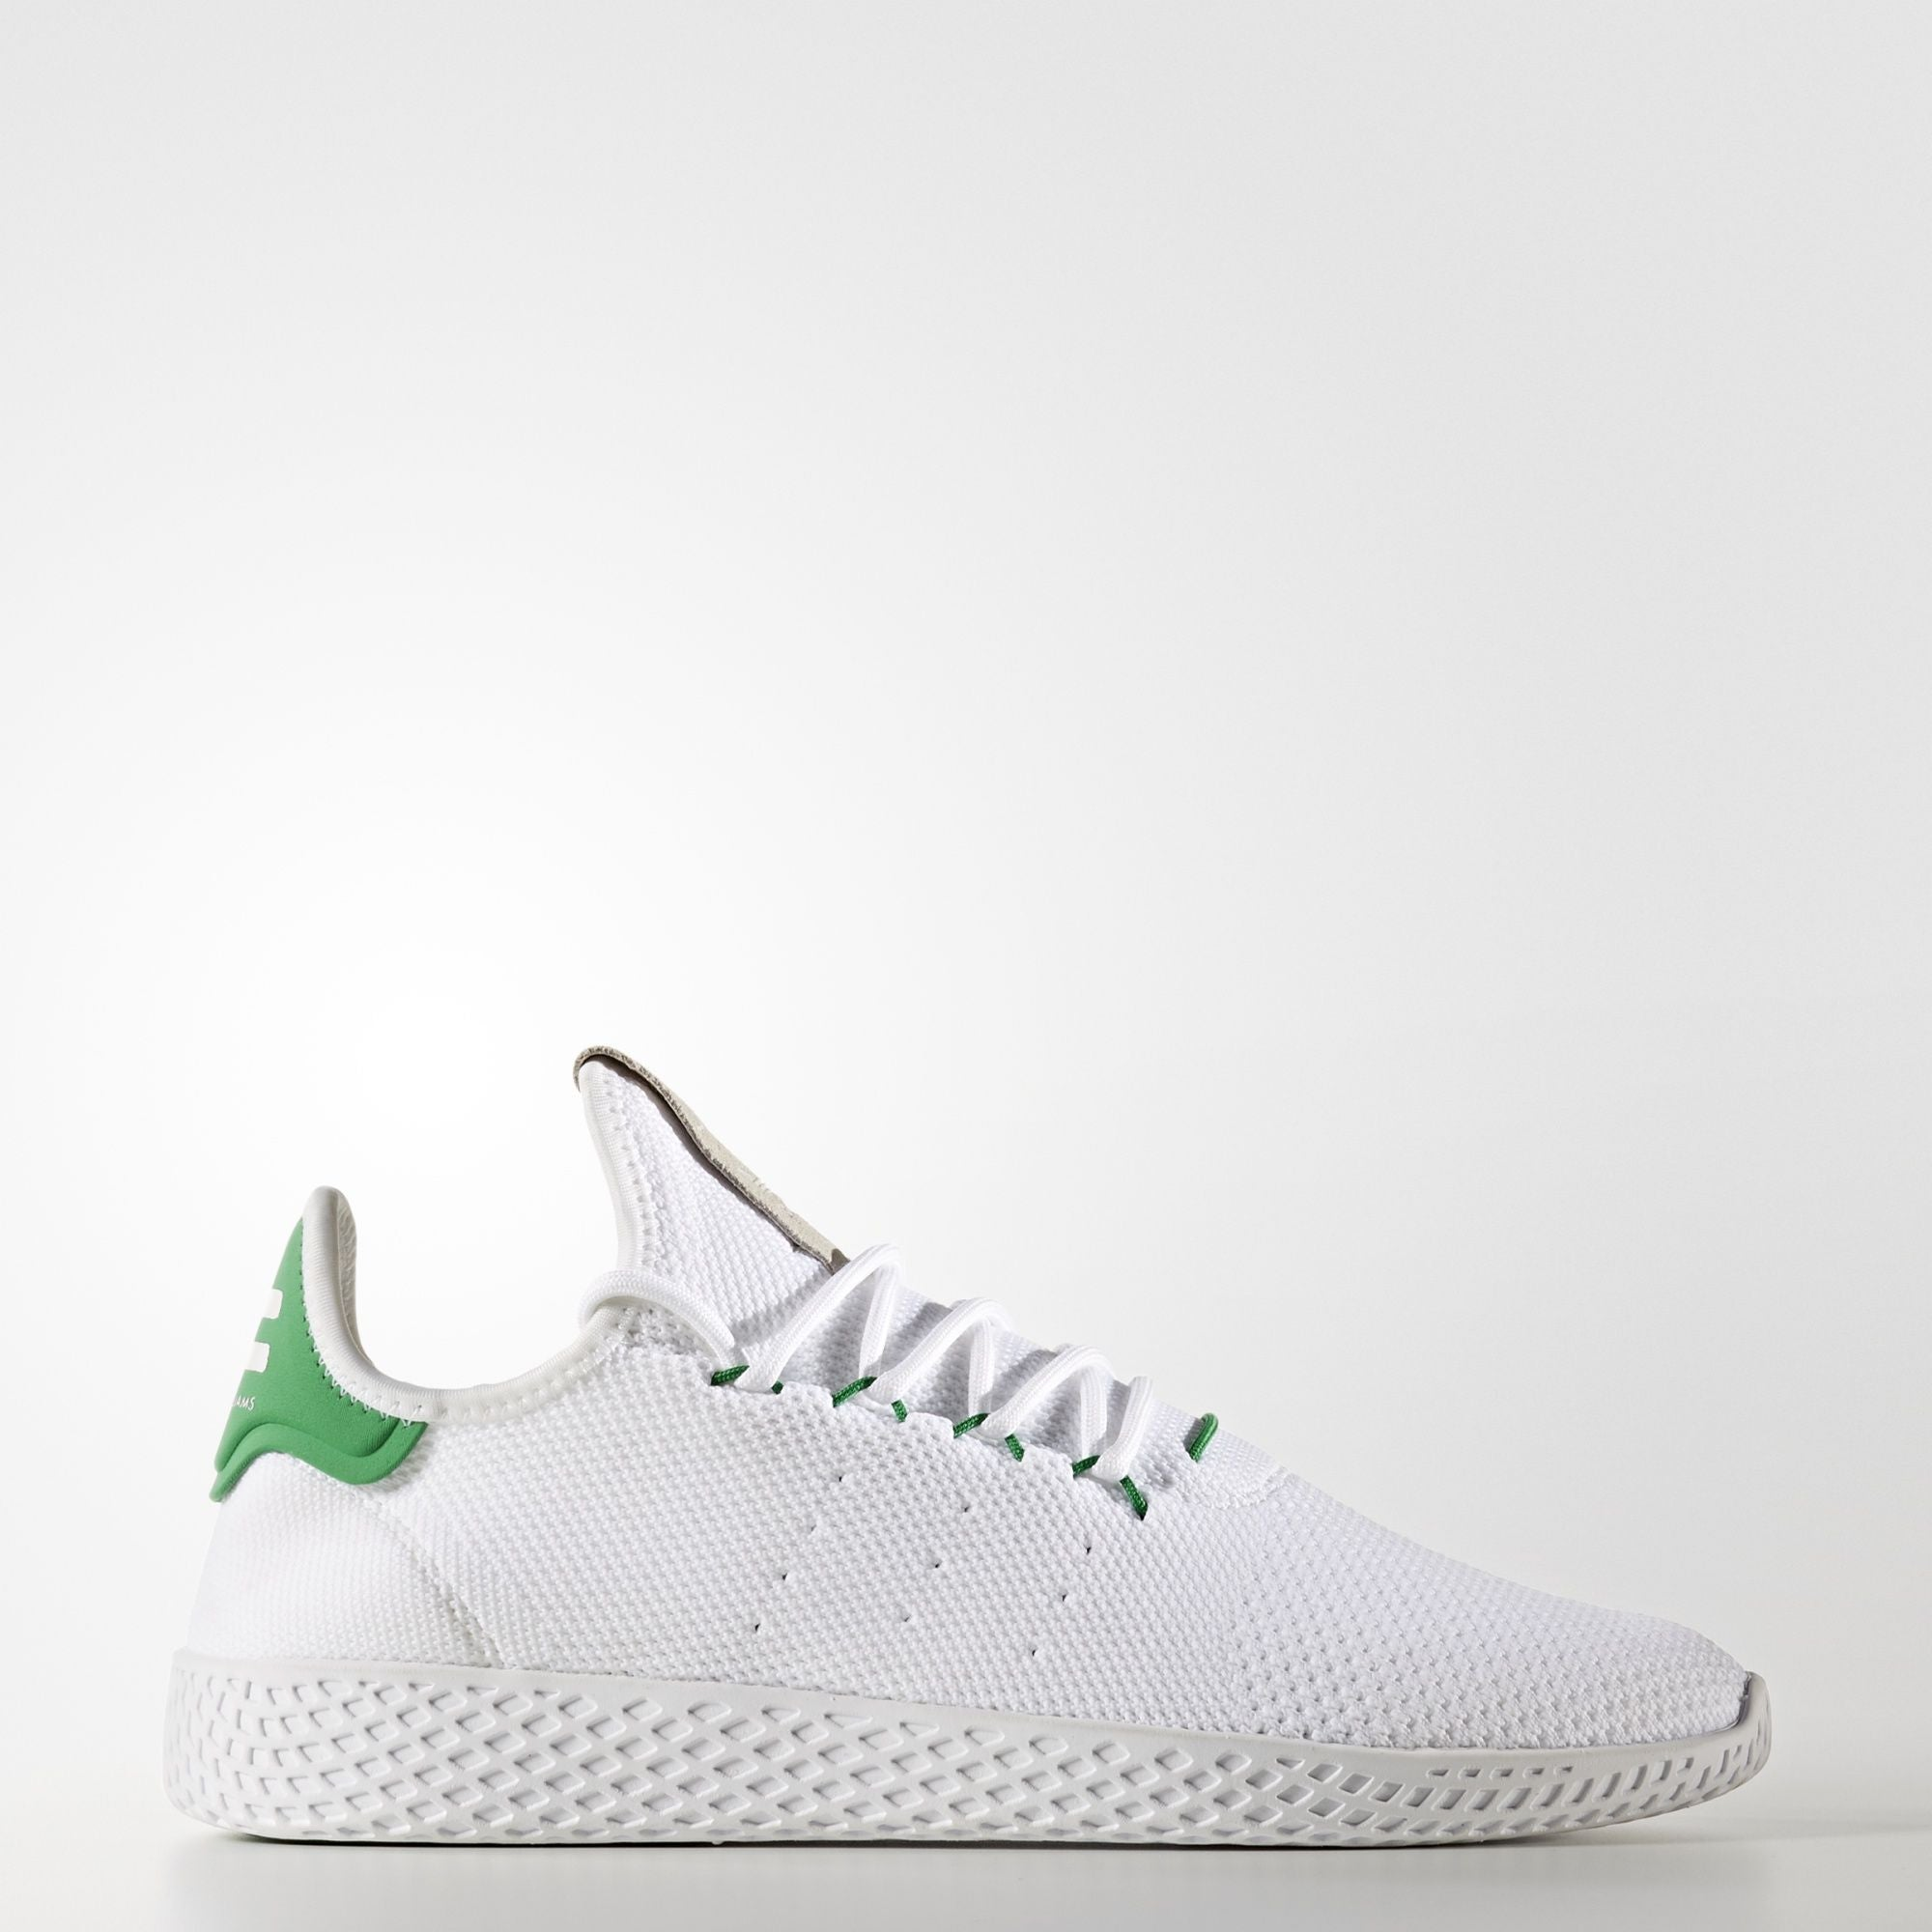 6be524fd8 Pharrell Williams  Tennis Hu features a sock Primeknit construction in  colorways that pay tribute to iconic adidas tennis shoes